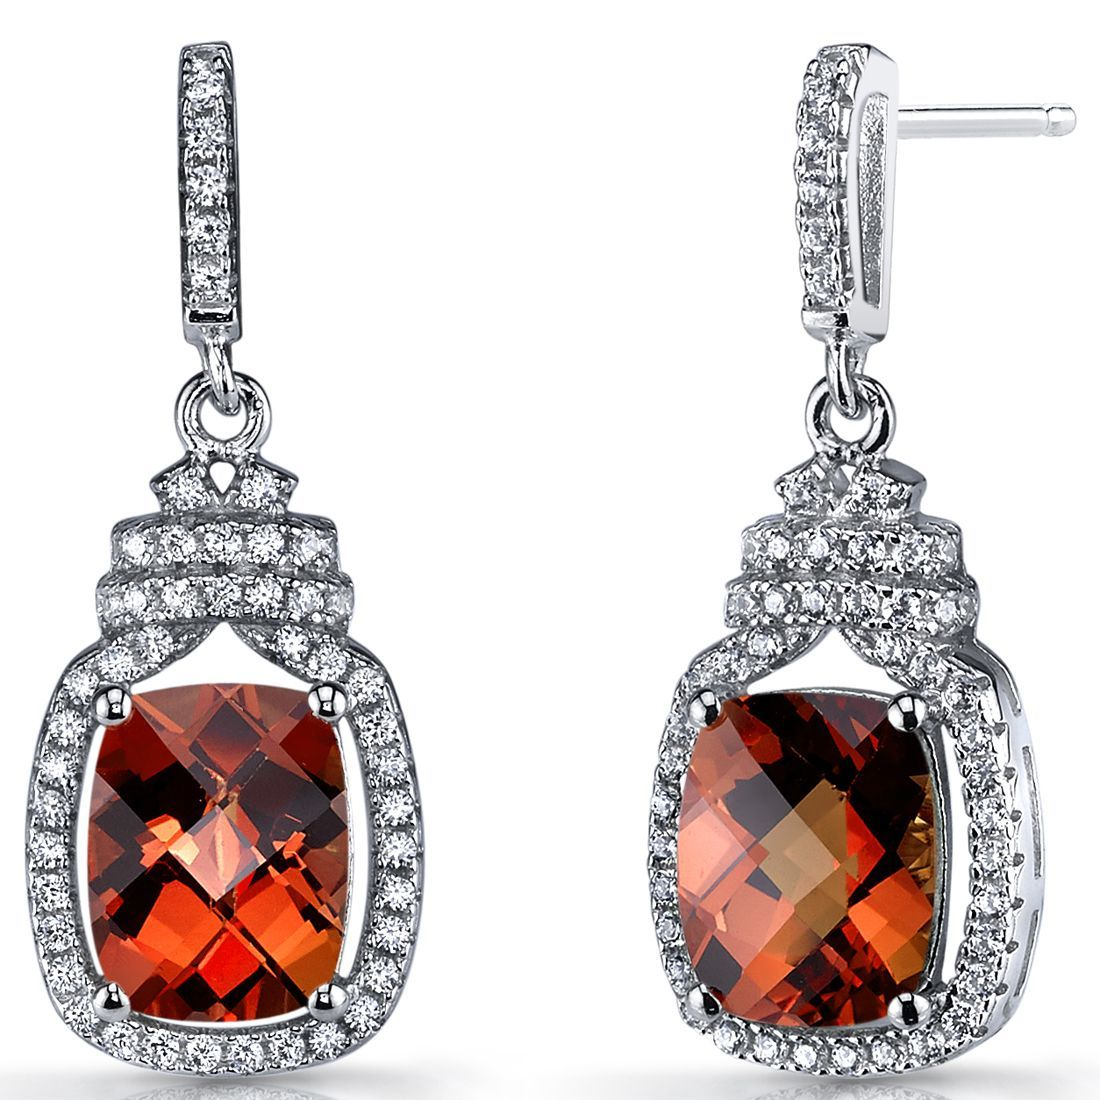 Oravo Red/Orange Padparadscha Stones and Sterling Silver Metal Halo Crown Dangle Earrings (6 ct Created Padparadscha), Women's, Size: Small